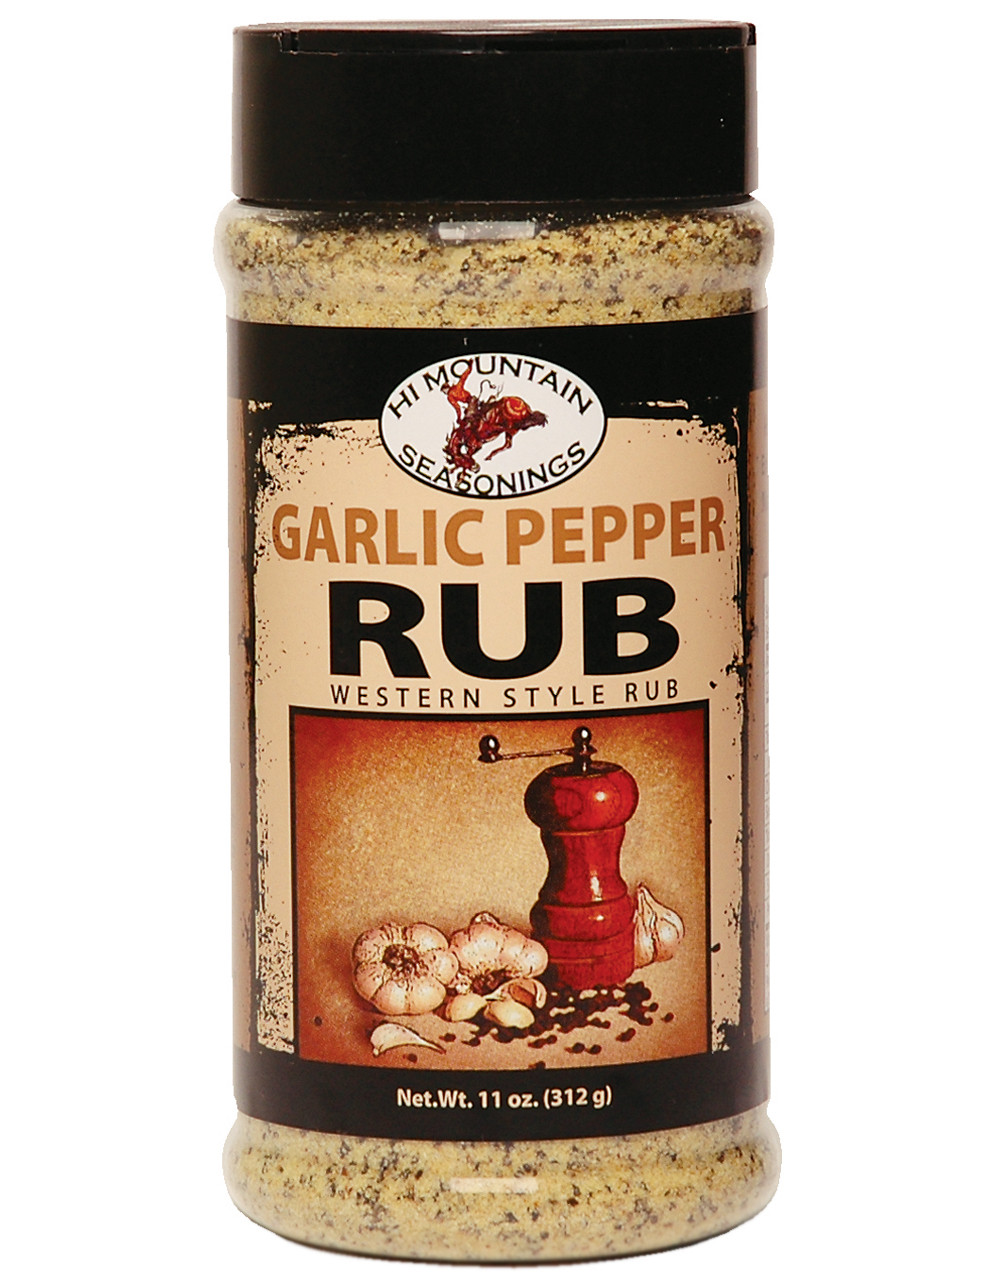 Garlic Pepper Rub Blend